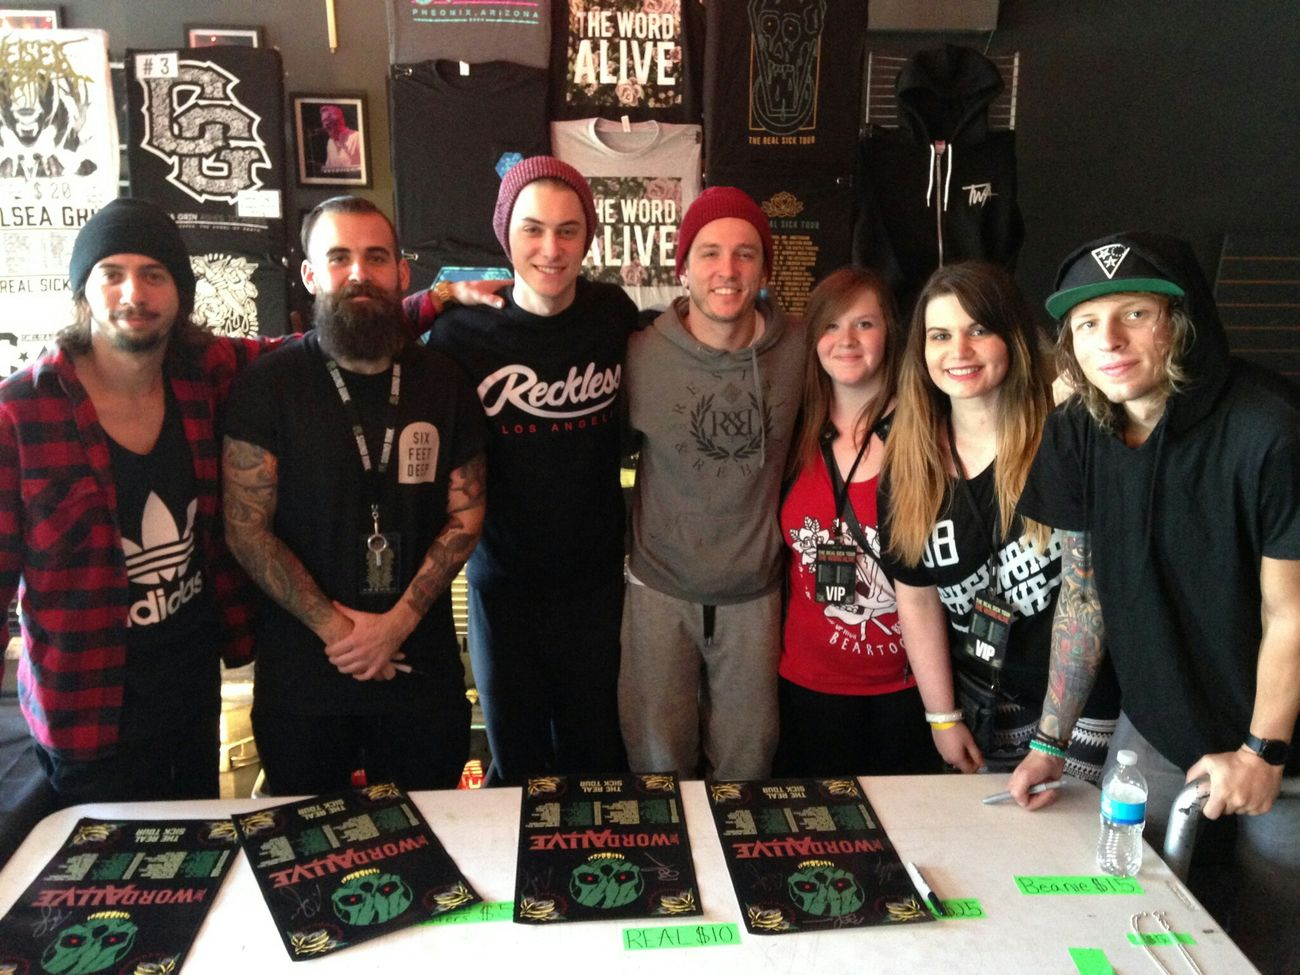 Meeting these guys is always amazing :D MeetAndGreet Thewordalive Love Concert Music